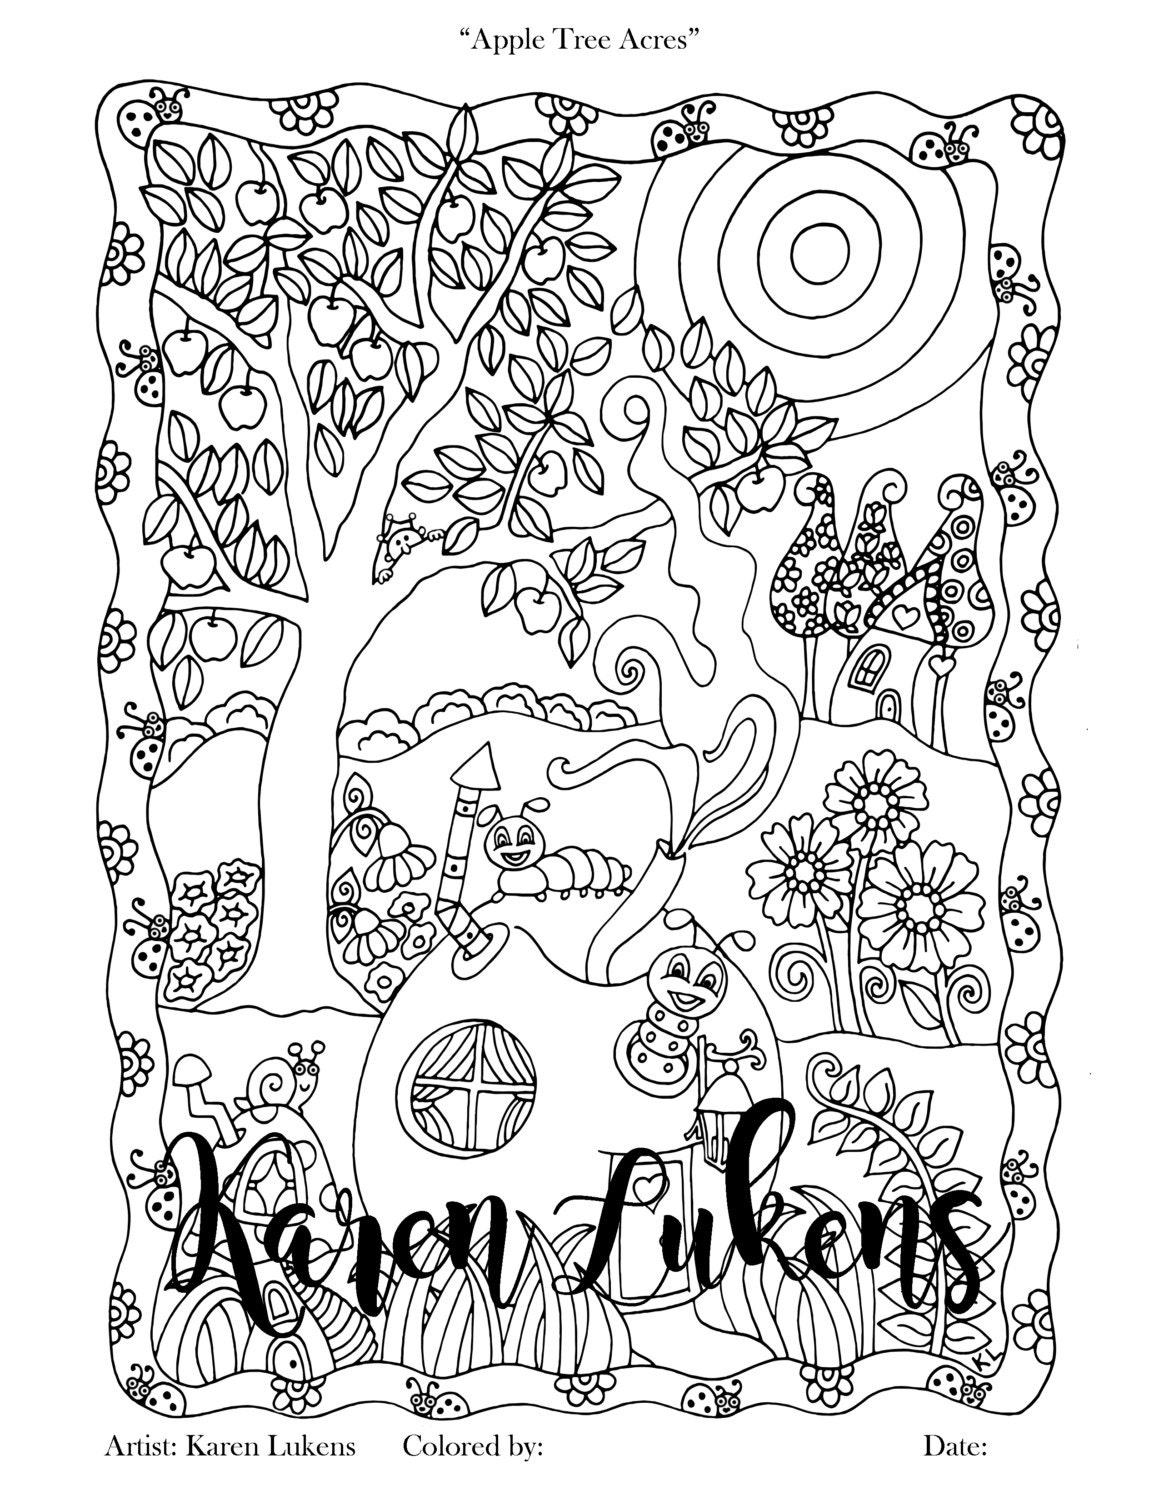 Coloring book page apple tree - Apple Tree Acres 1 Adult Coloring Book Page Printable Instant Download